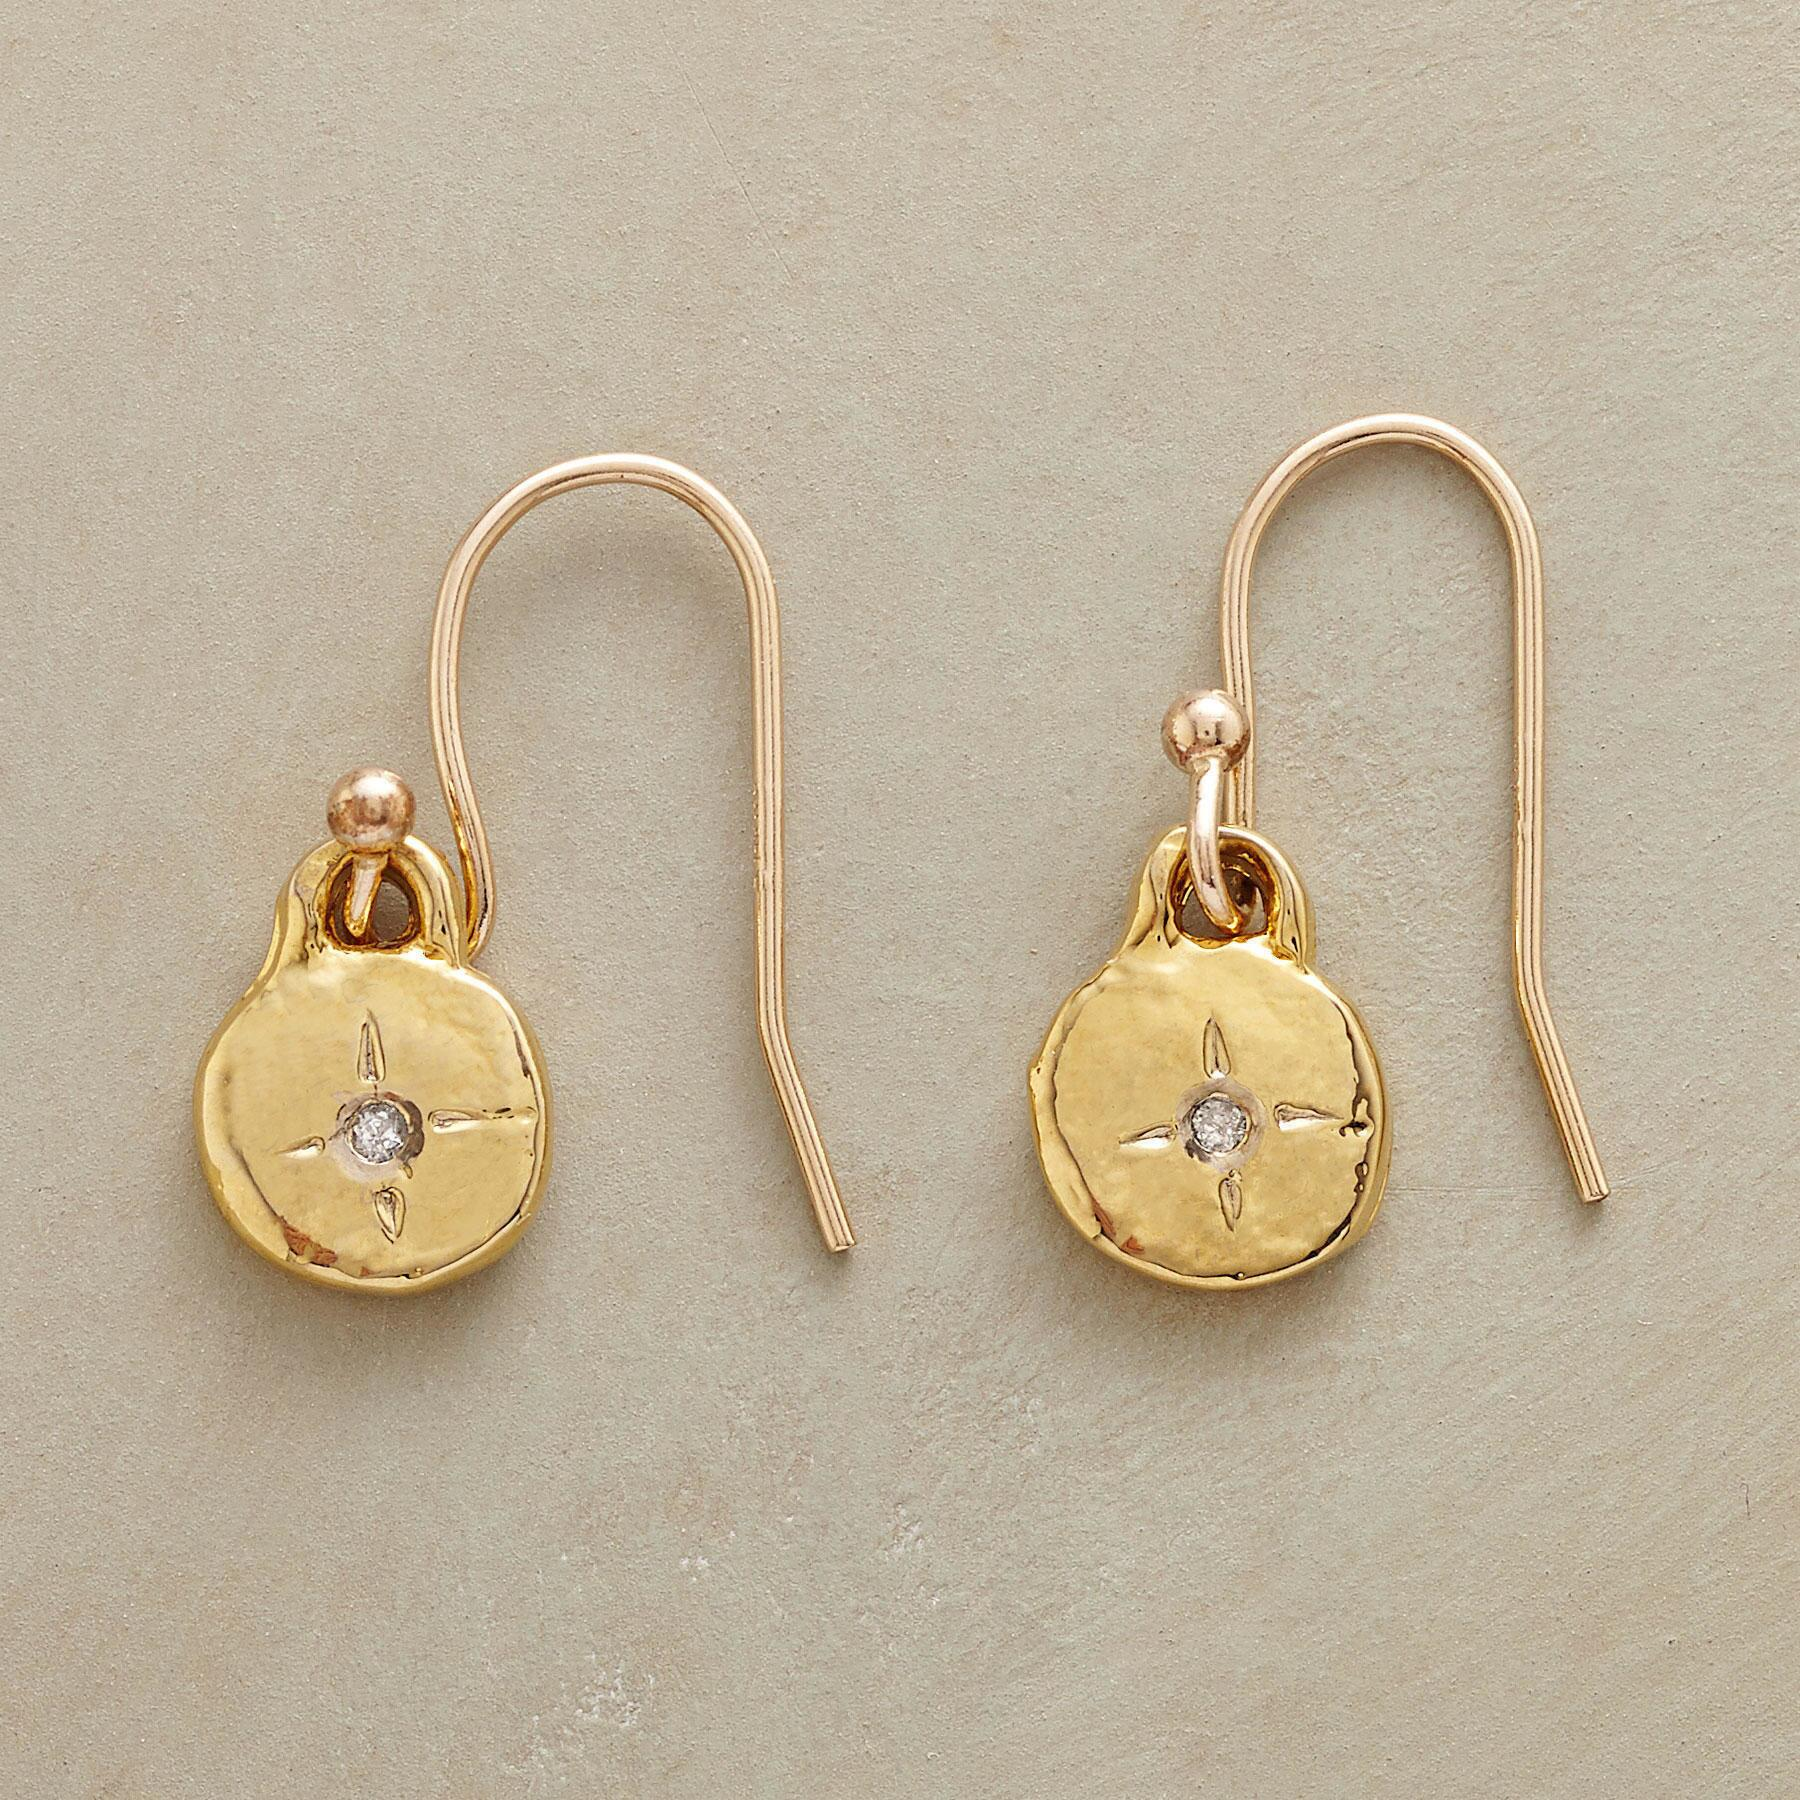 GOLD LITTLE BIT EARRINGS: View 1